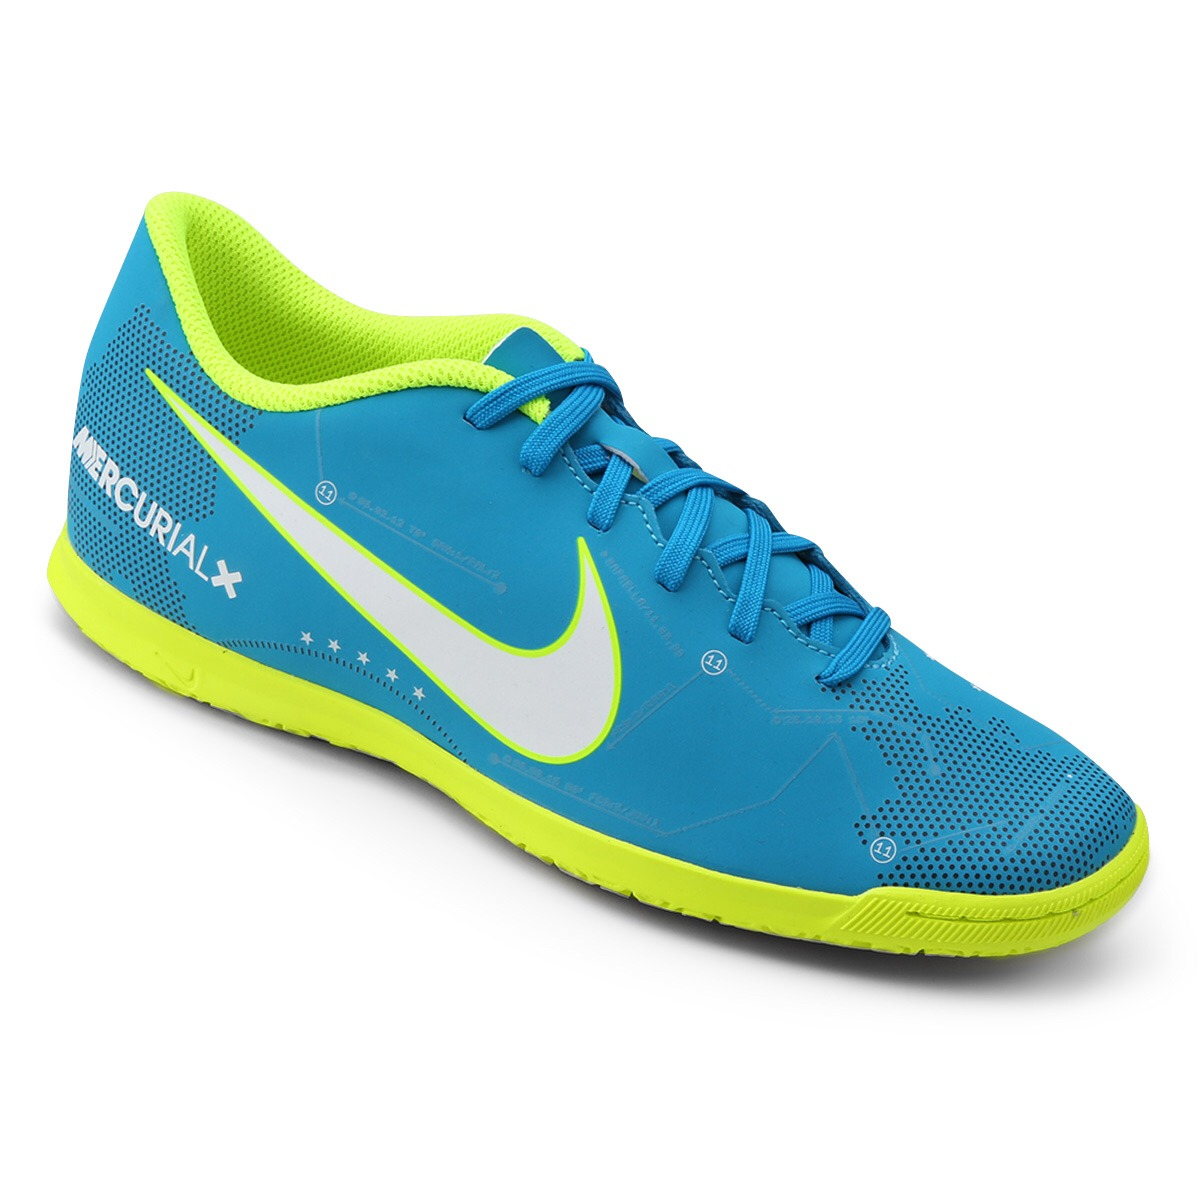 ... laranja preto fd707 9a073 where can i buy tênis futsal nike mercurial  neymar 100 original. carregando zoom. 119c9 low price chuteira ... e201e96fde88c